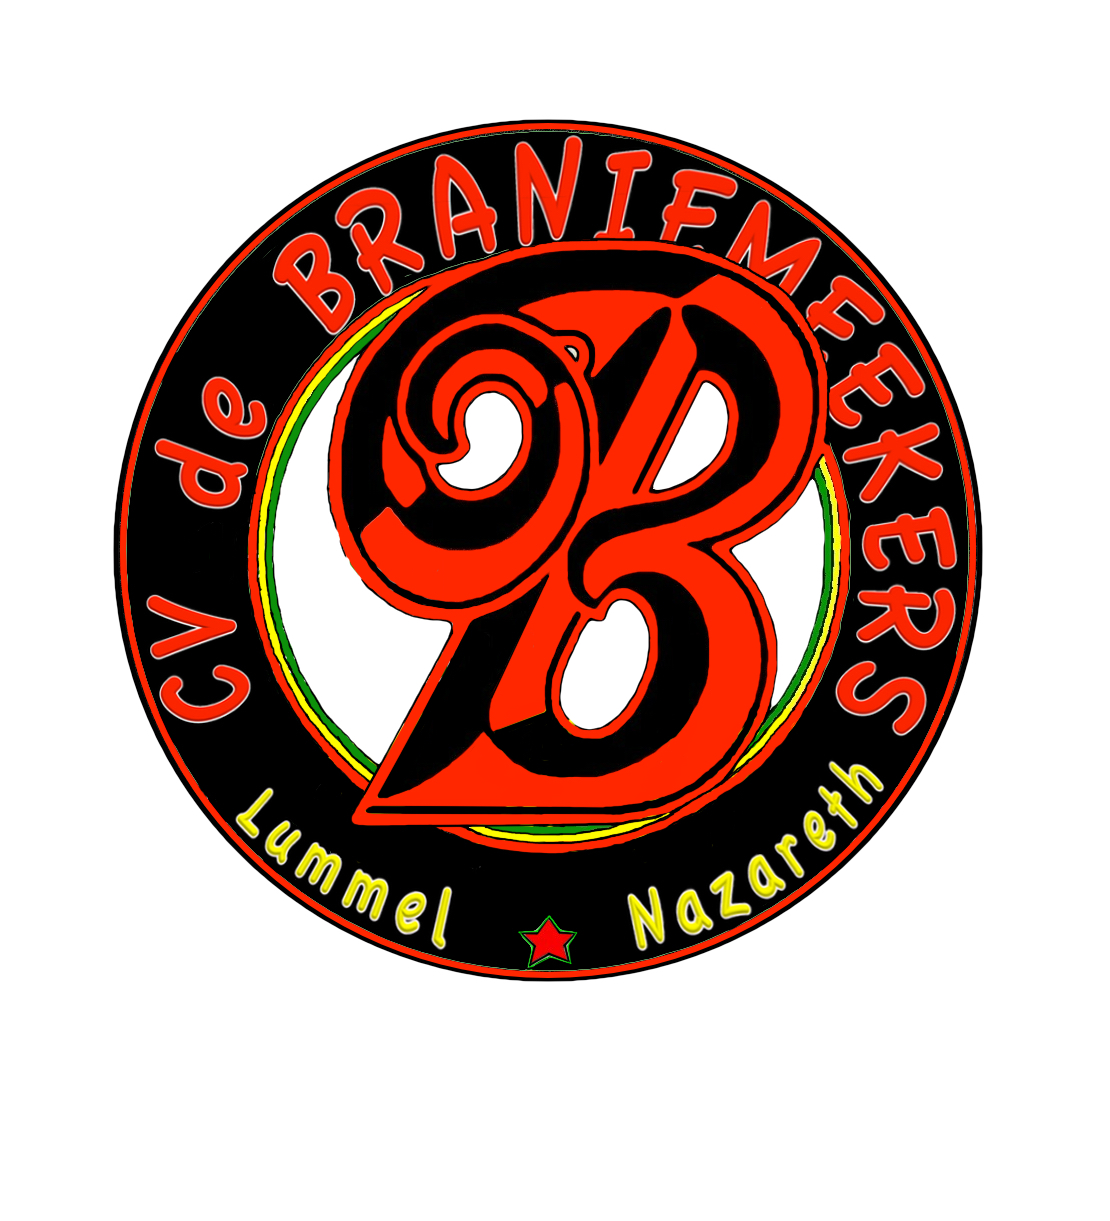 Recent logo Braniemeekers